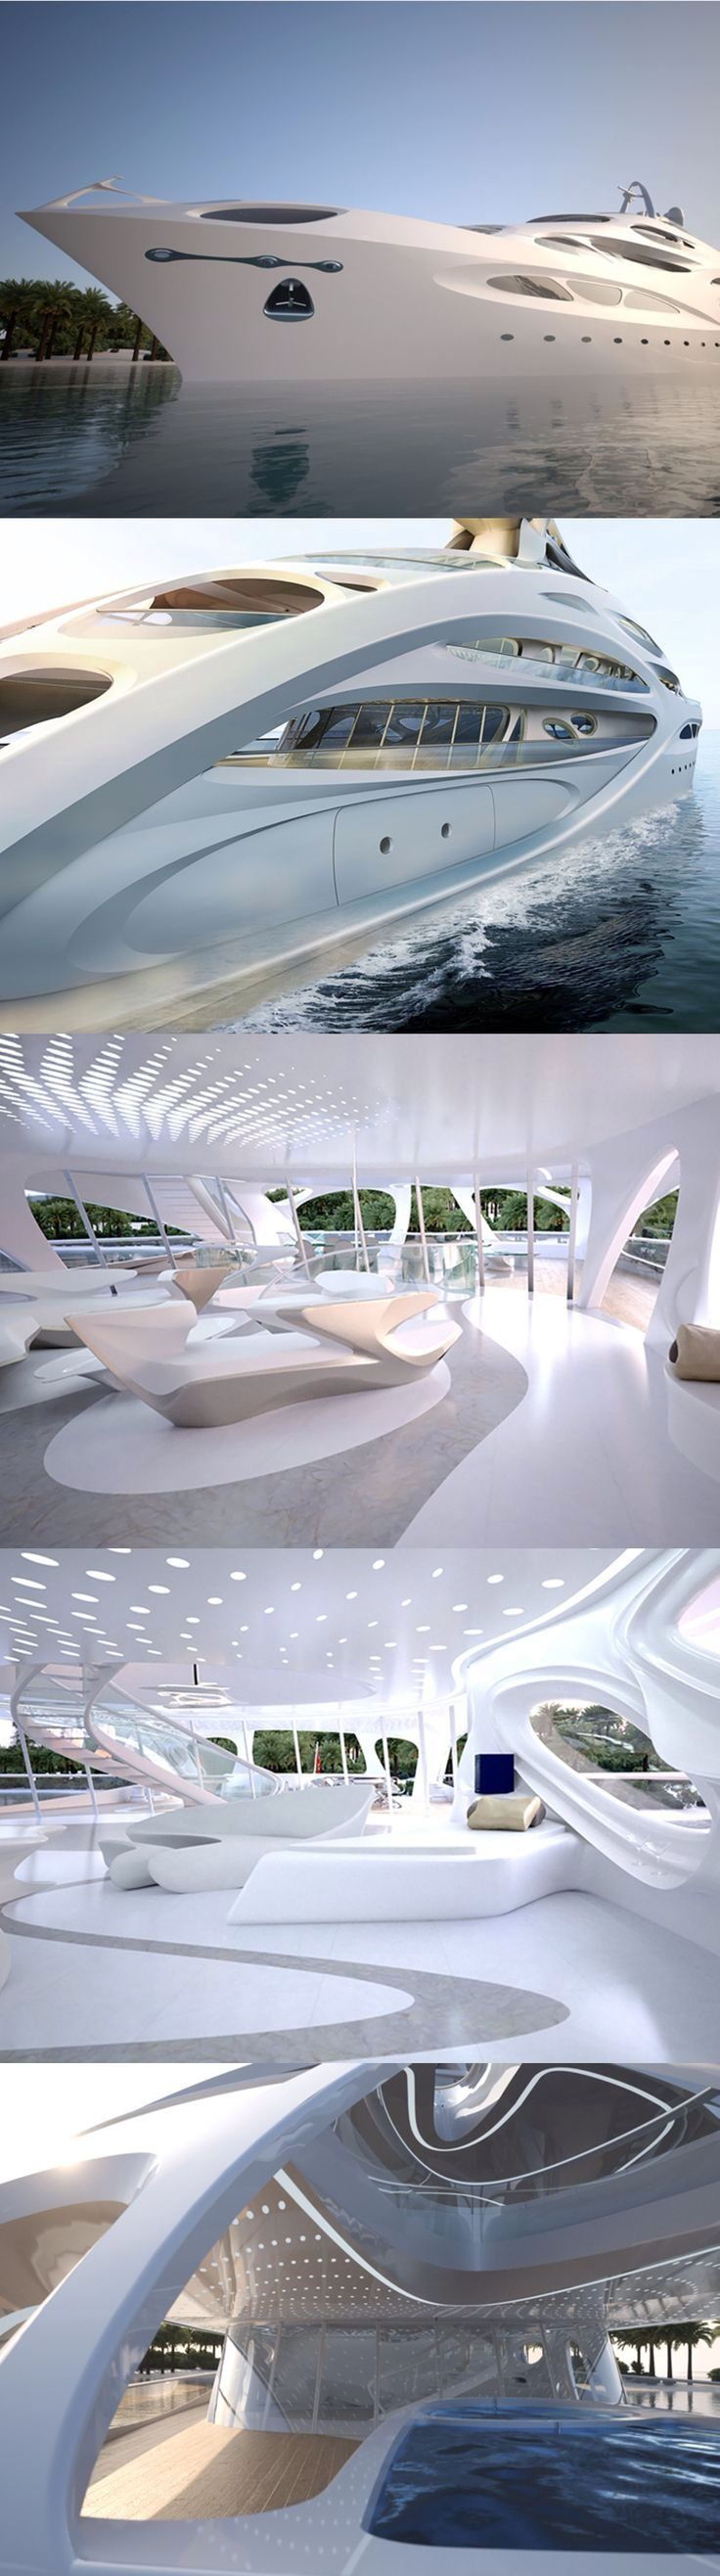 Beautifully furnished yacht